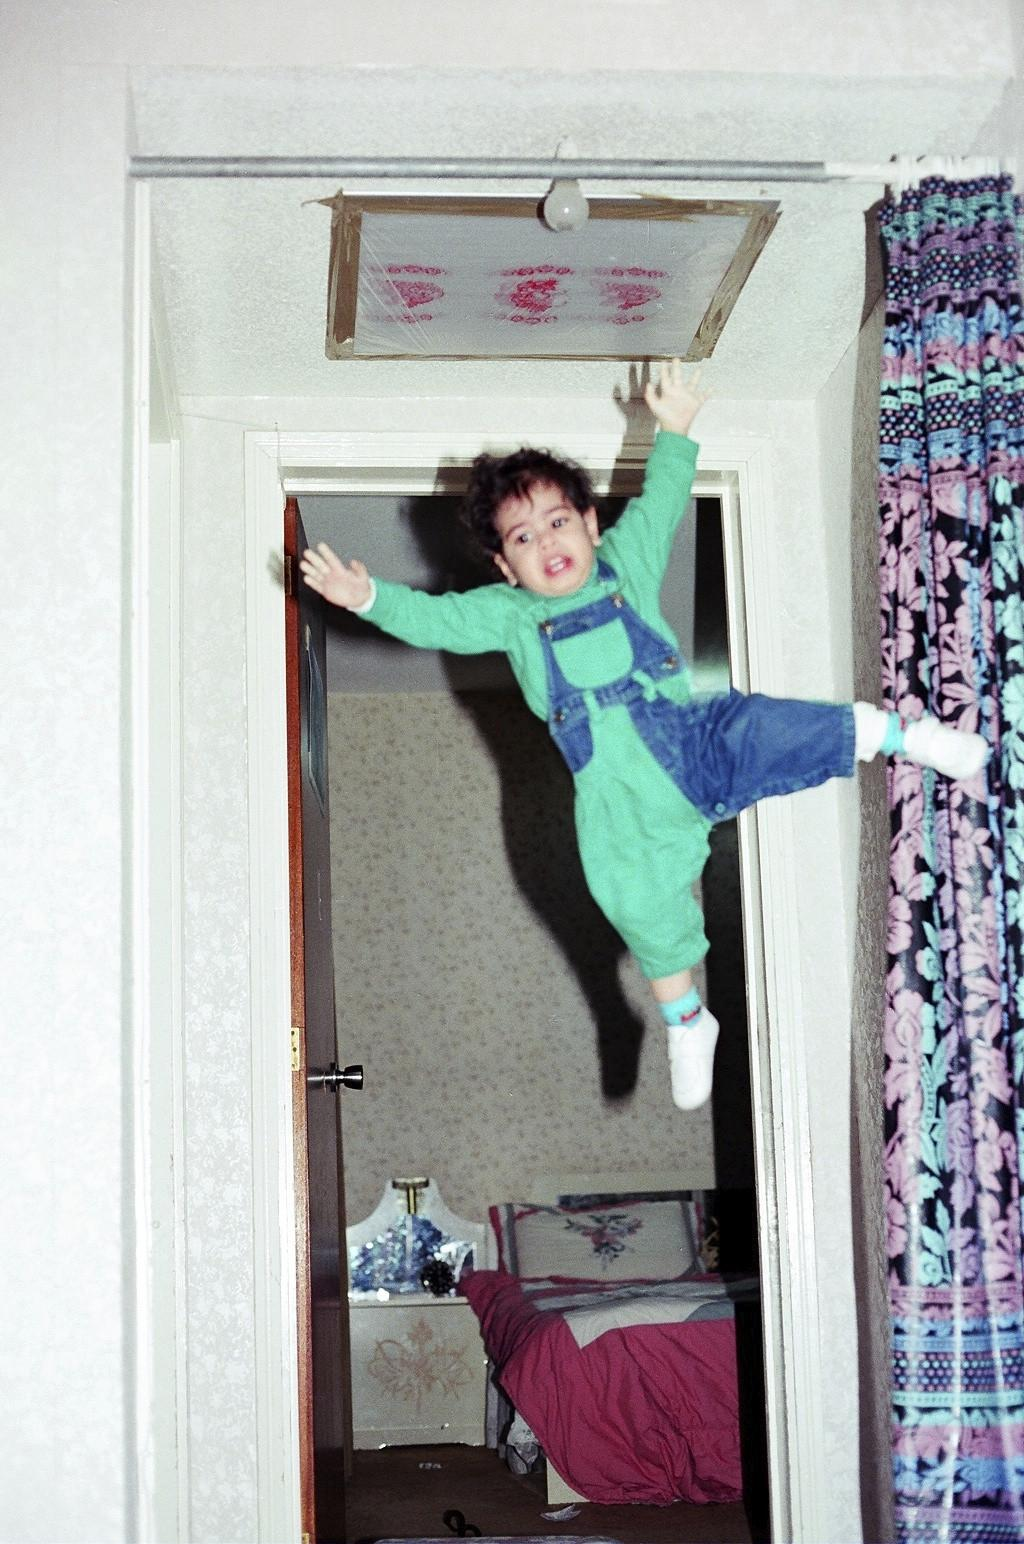 My dad thought 2-year-old me was strong enough to hang from the curtain rod while he takes a picture -   Misc